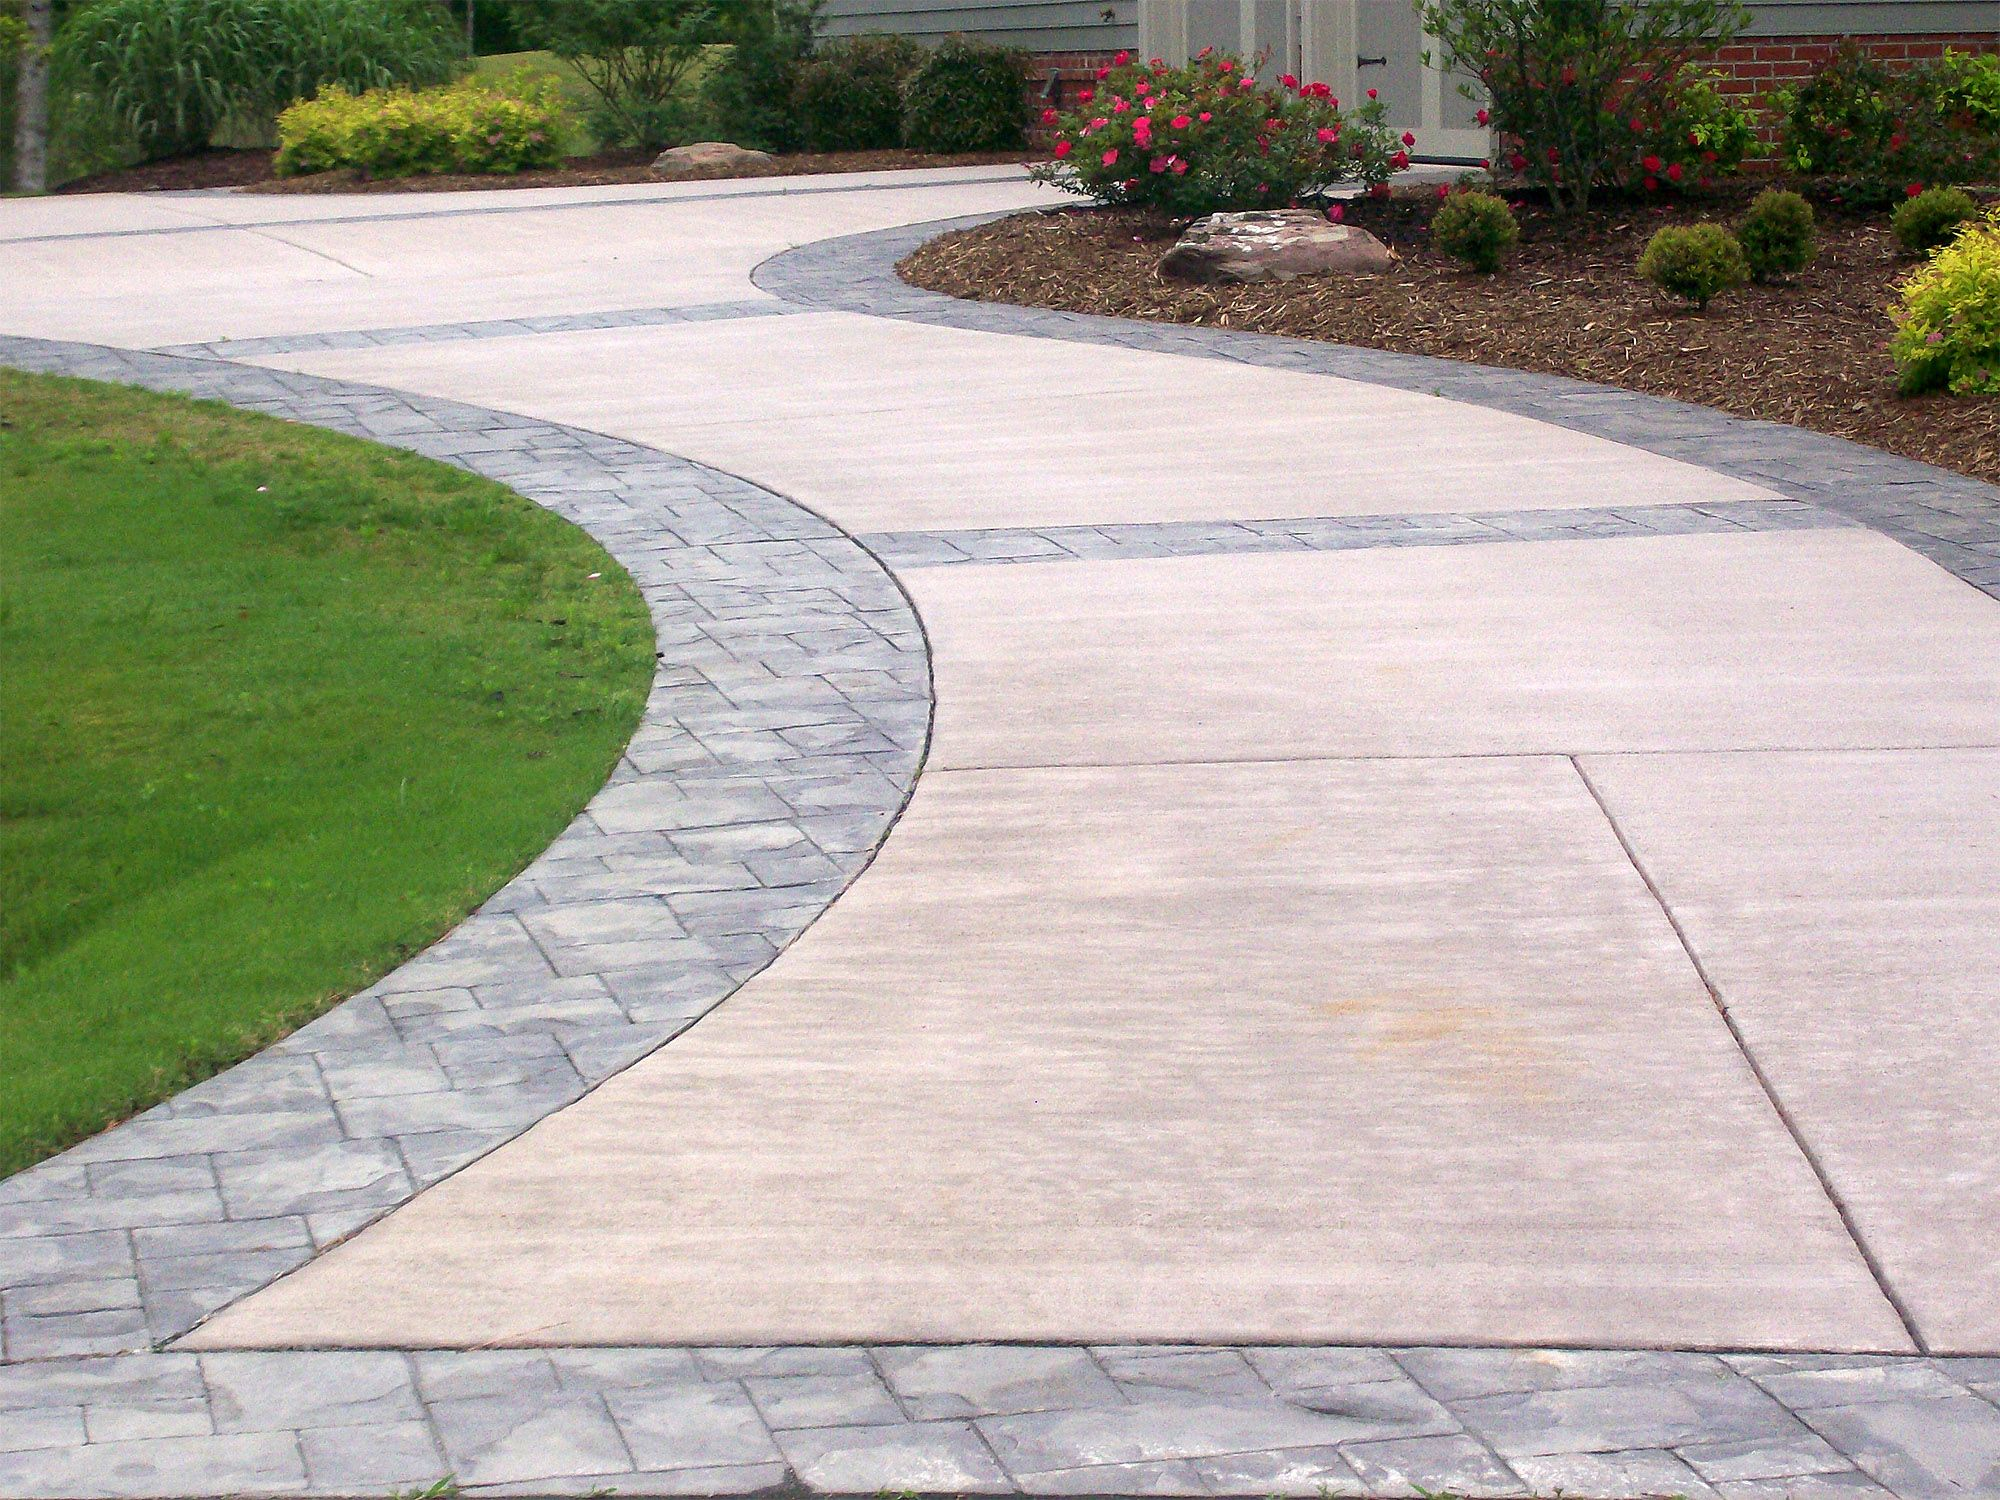 Brand new refinished concrete driveway with decorative stamped brand new refinished concrete driveway with decorative stamped pavers solutioingenieria Images